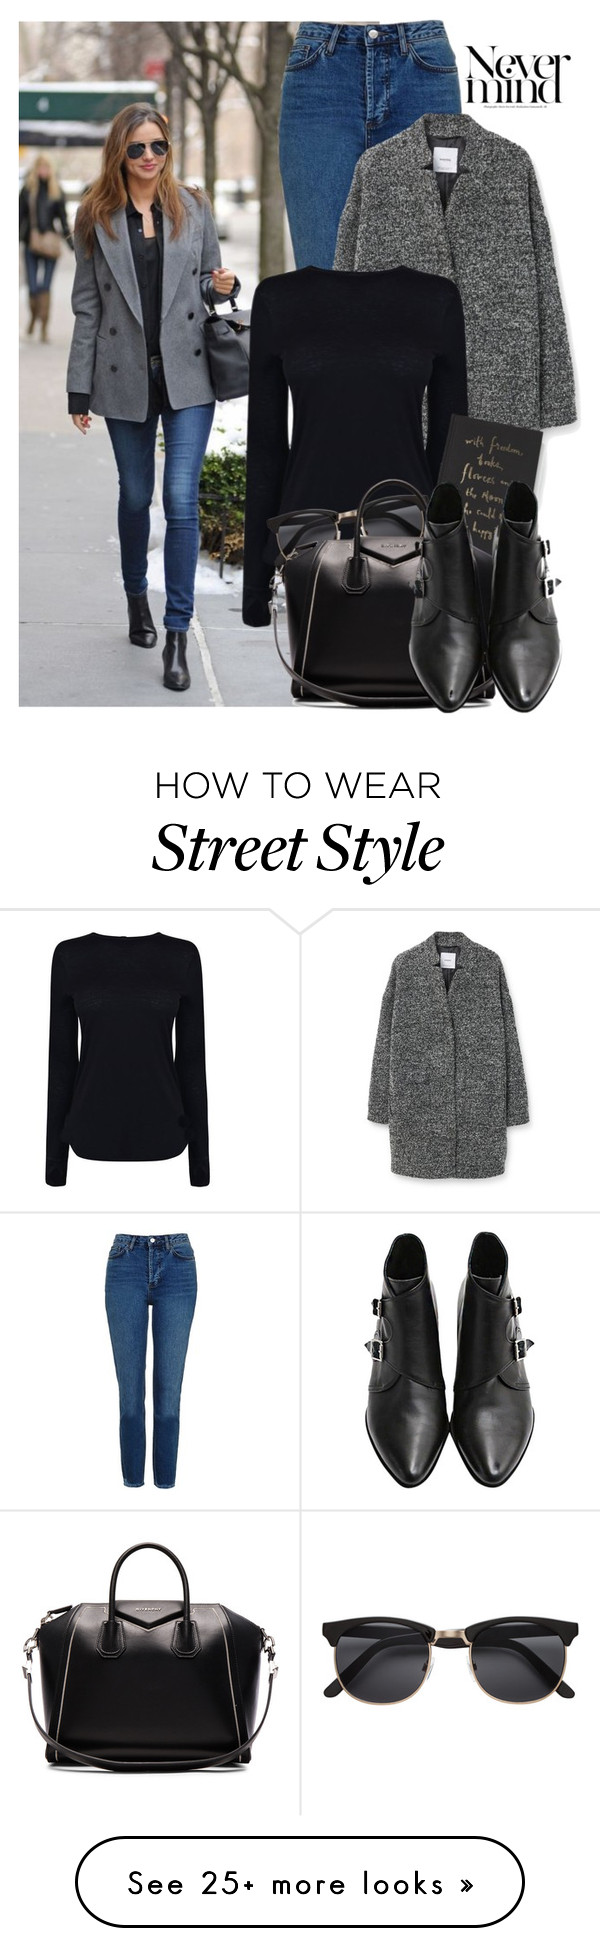 """29. Street Style"" by facking-fashion-guru on Polyvore featuring Topshop, MANGO, Helmut Lang, Kate Spade and Givenchy"